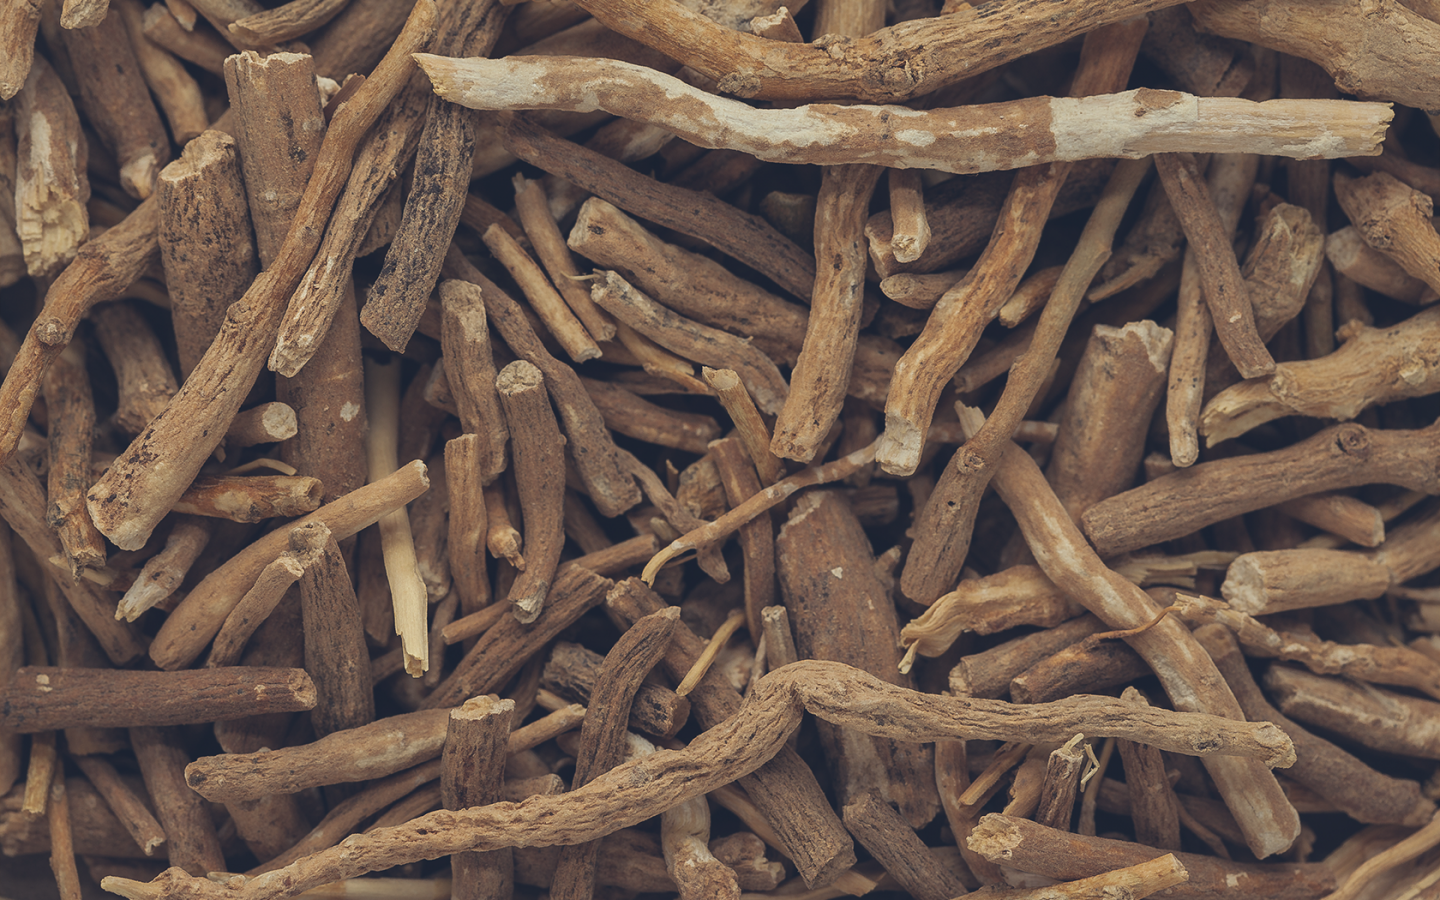 Ashwagandha: Benefits, Uses & Side Effects